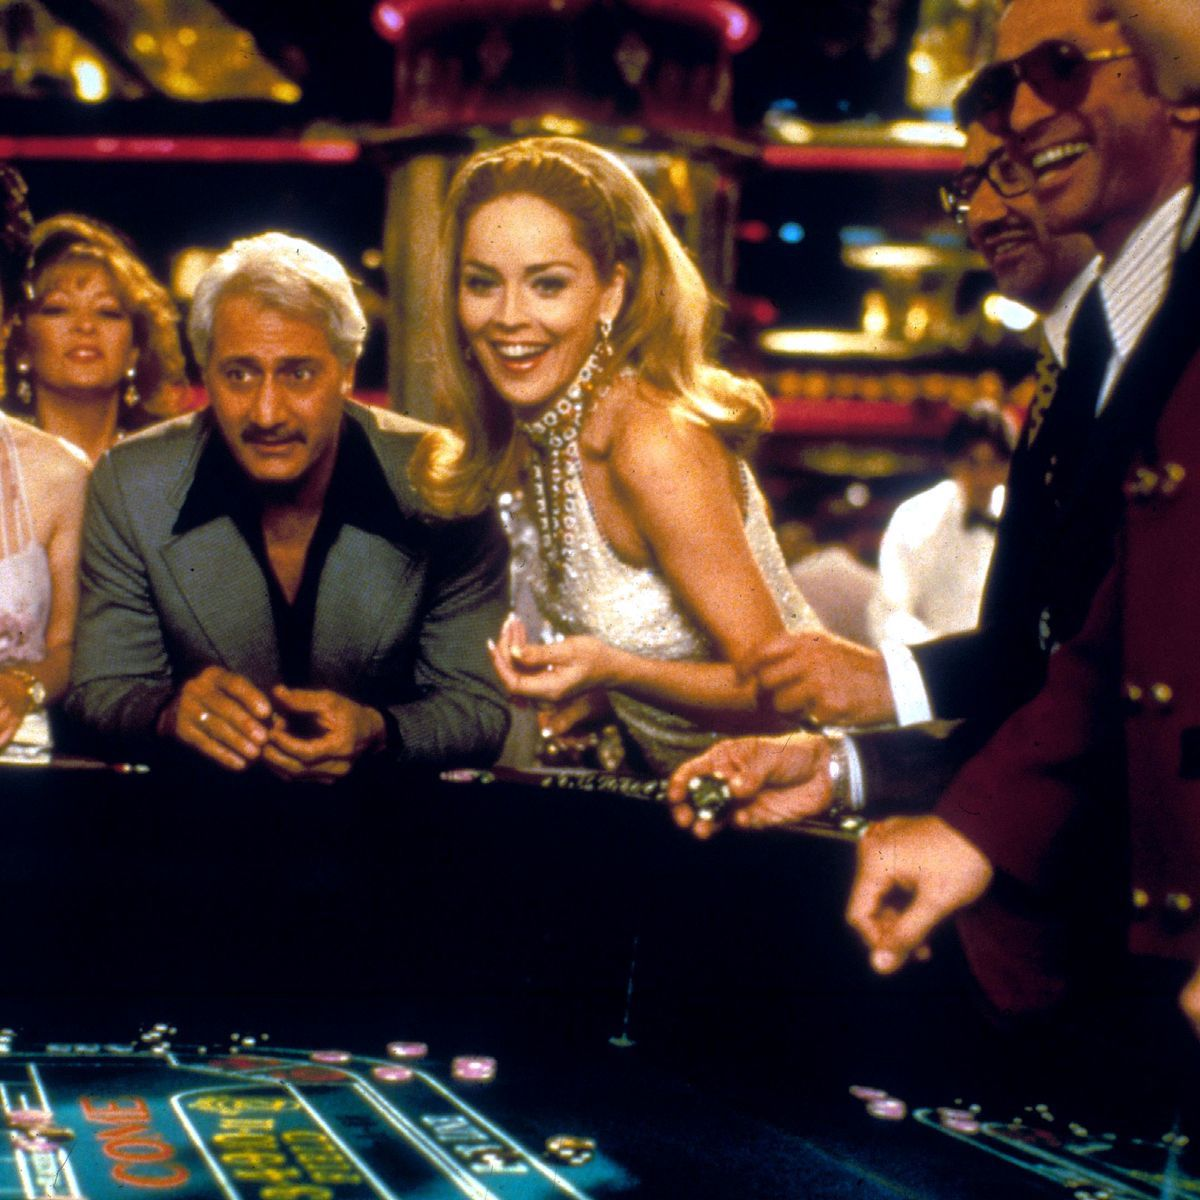 The kingdom of casino proposes a bountiful portion of excitement. Find out which TV programmes include casino gaming.